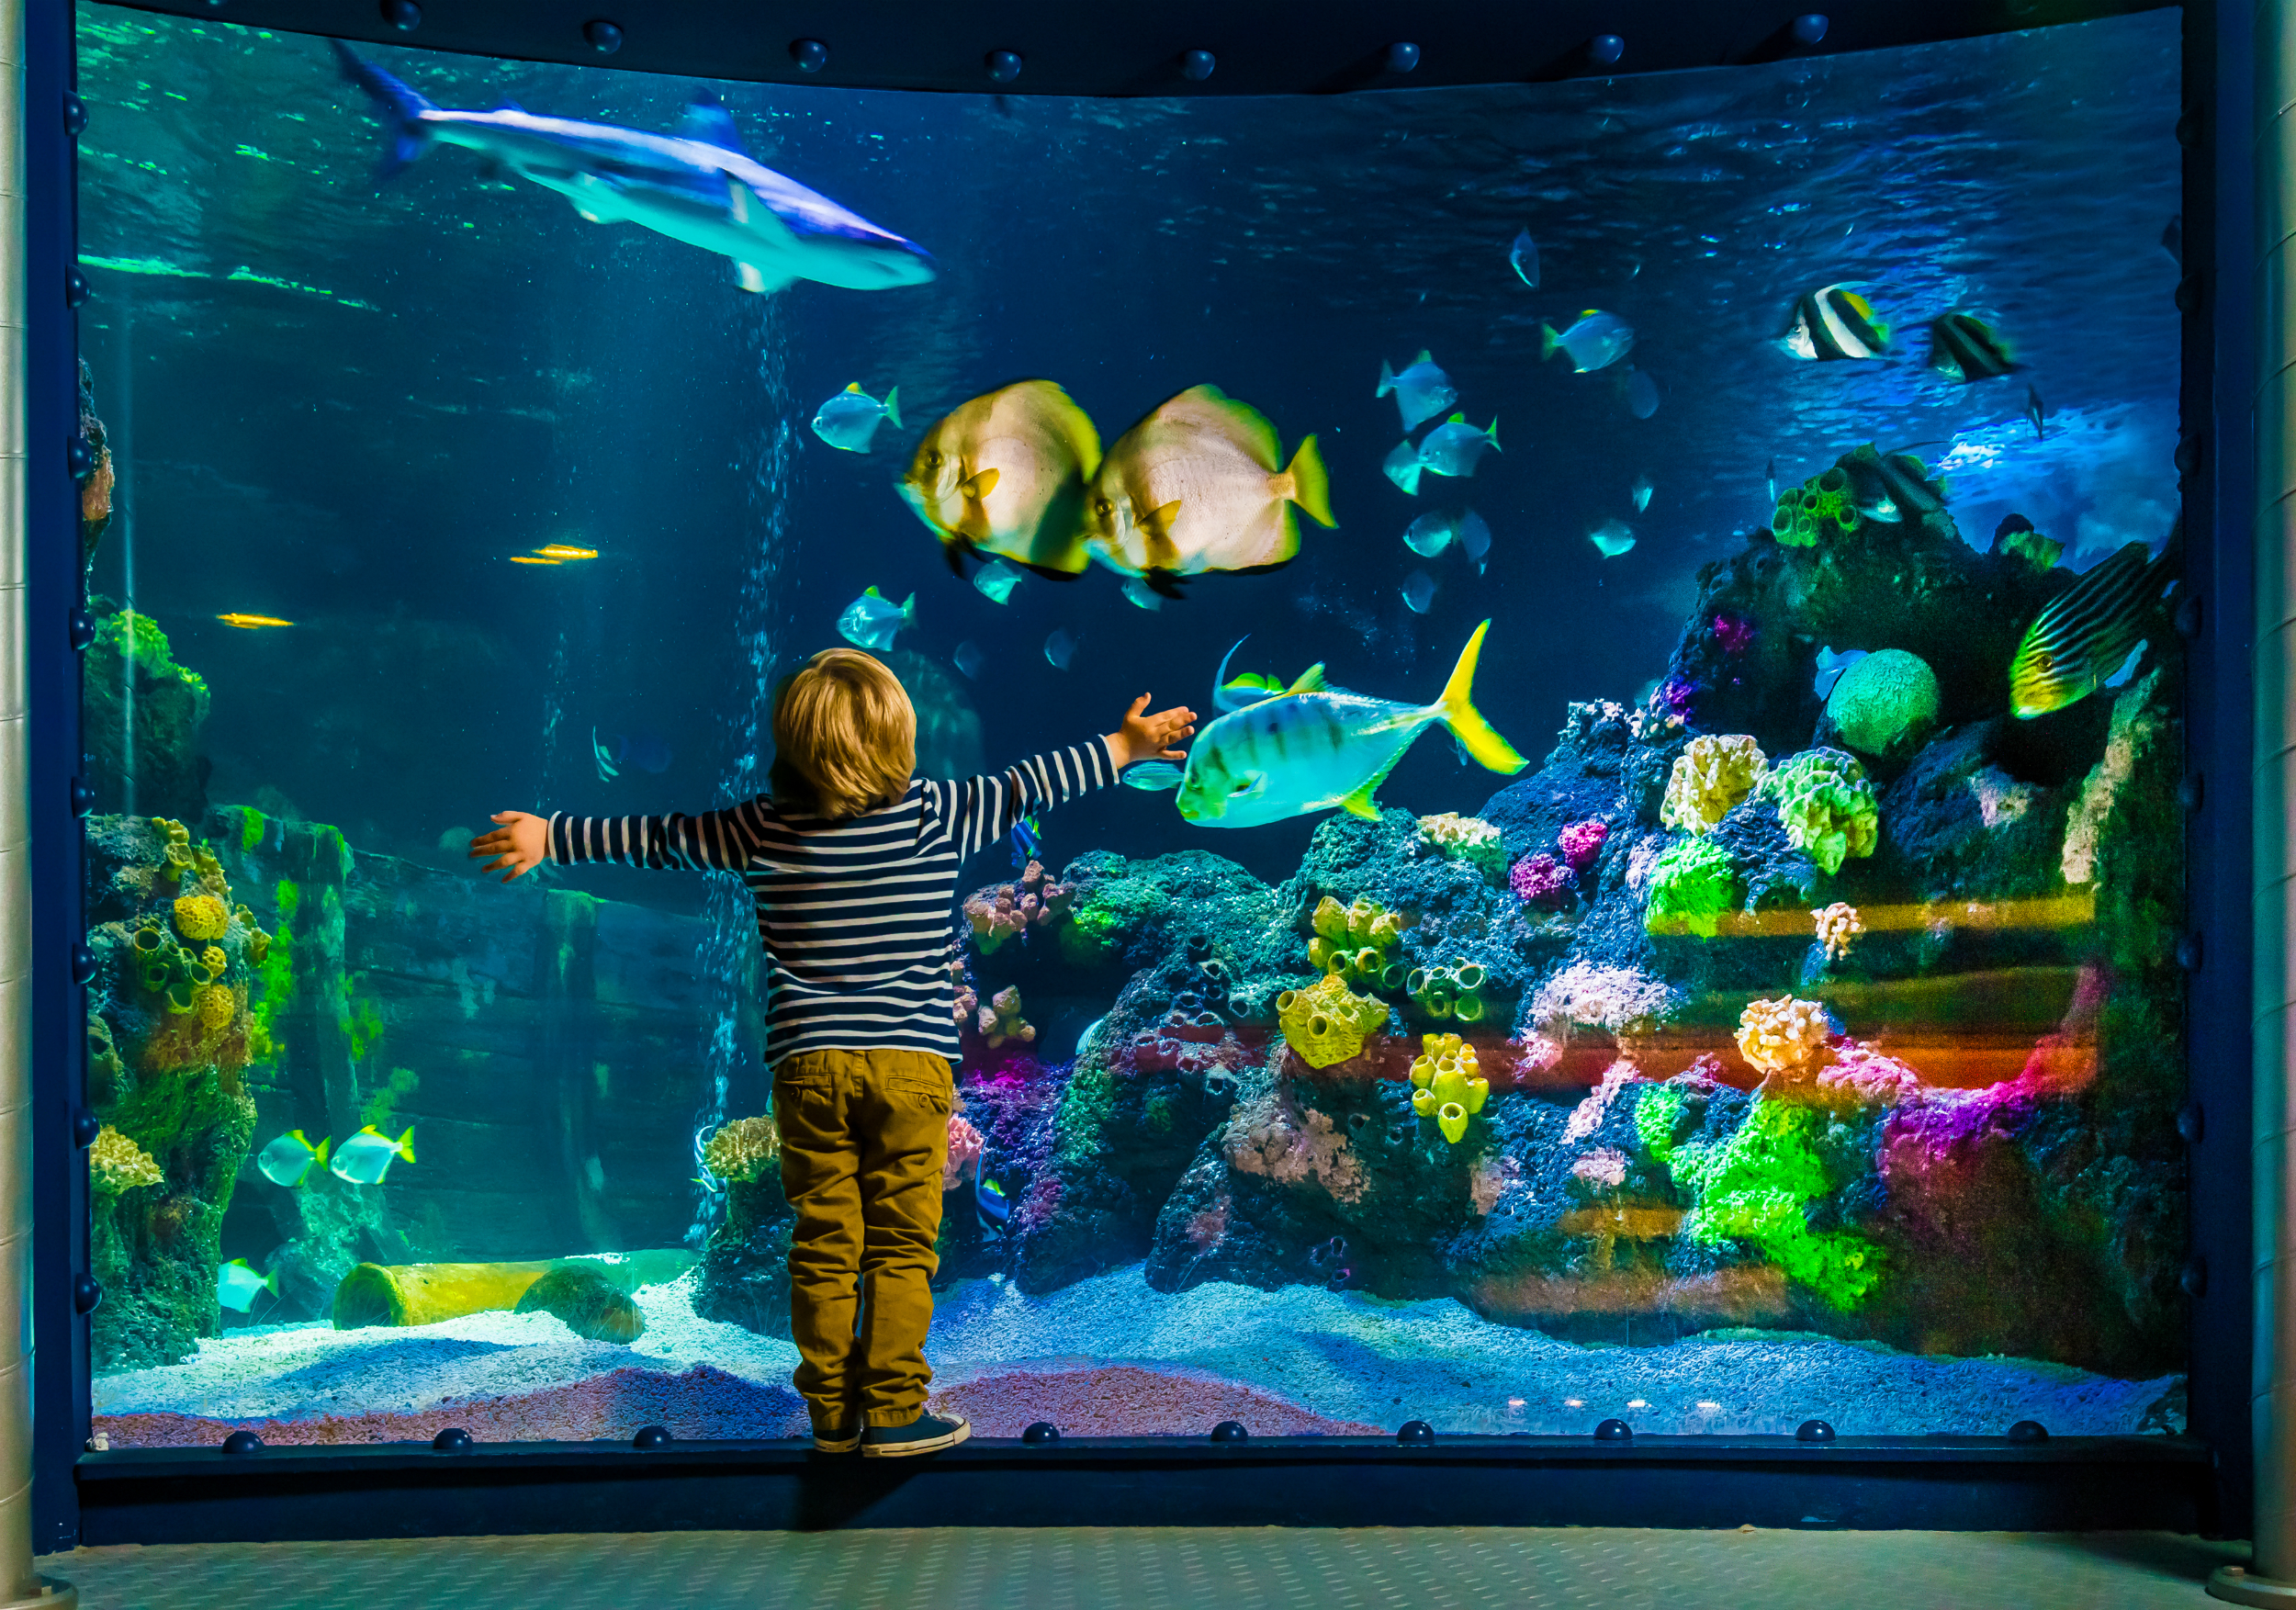 Child In Front Of Aquarium